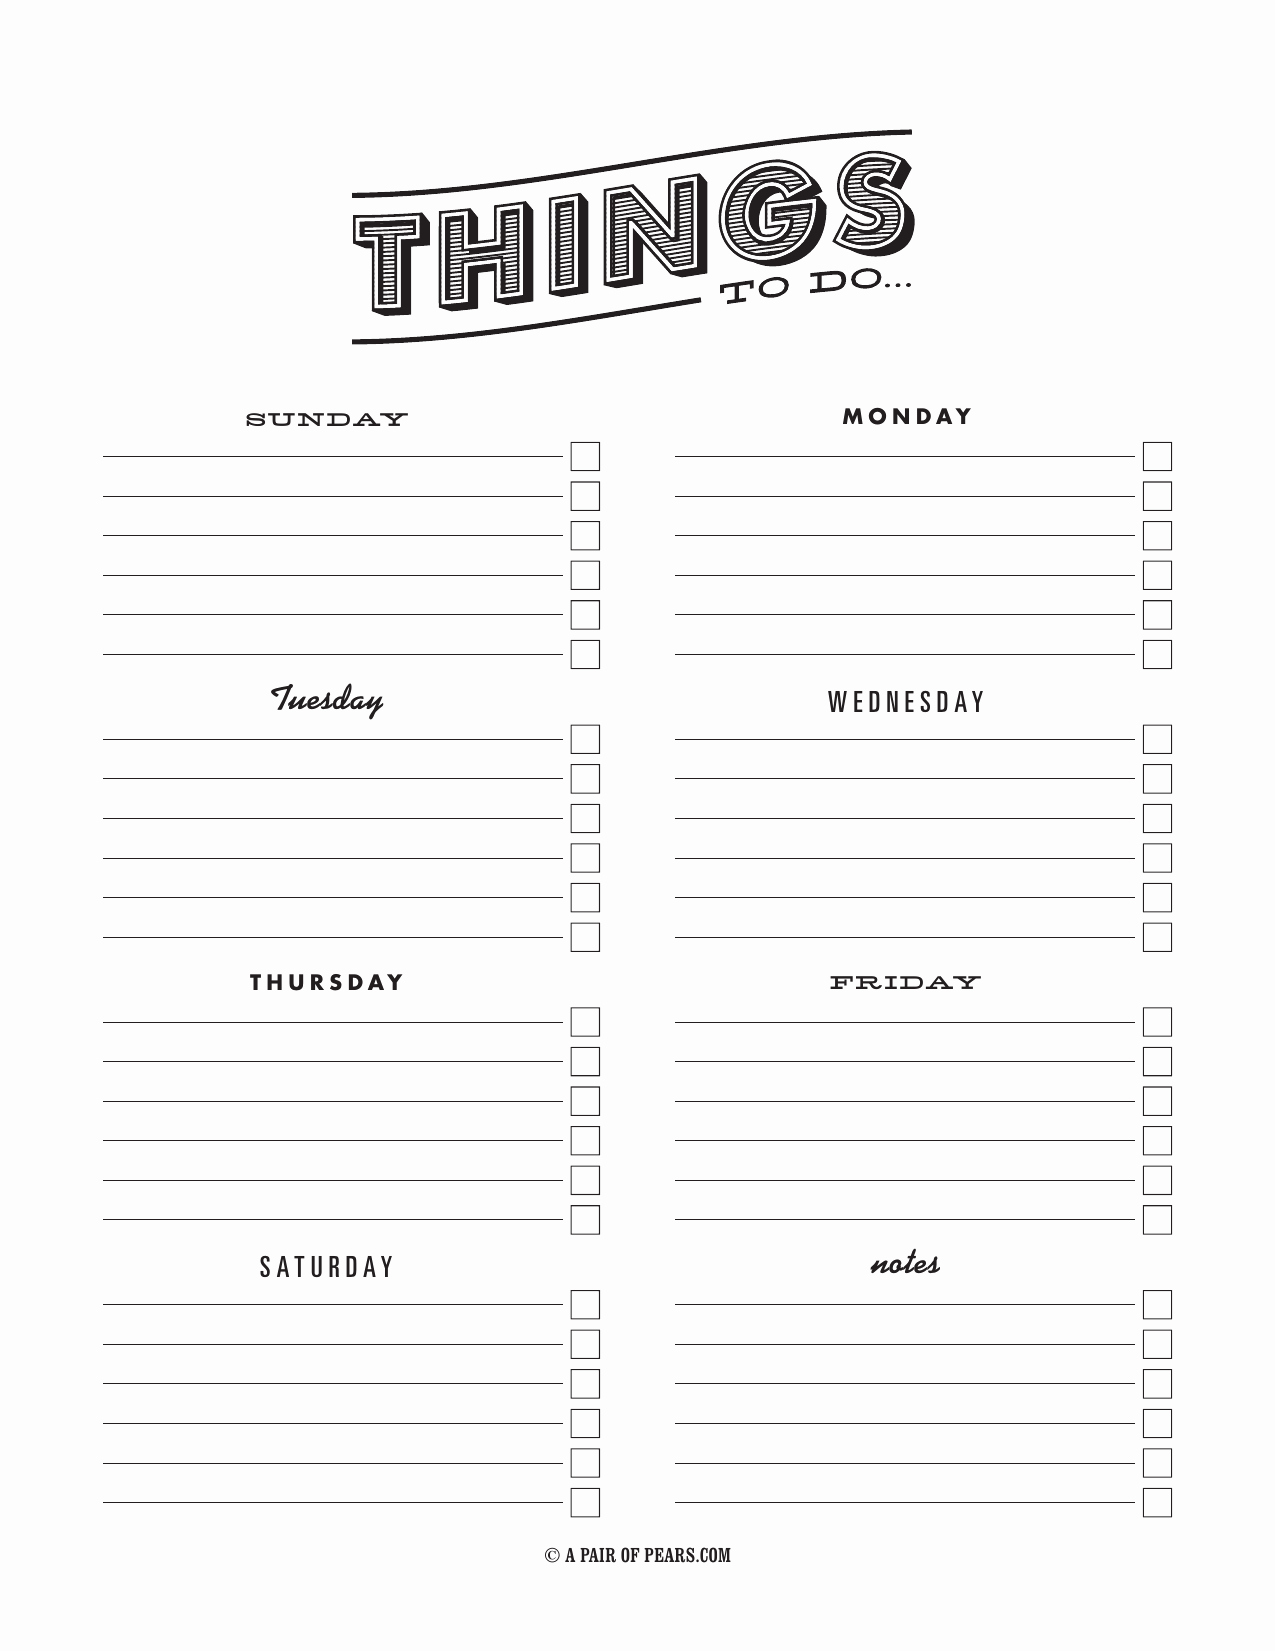 To Do Checklist Template New Download Weekly Checklist Template Excel Pdf